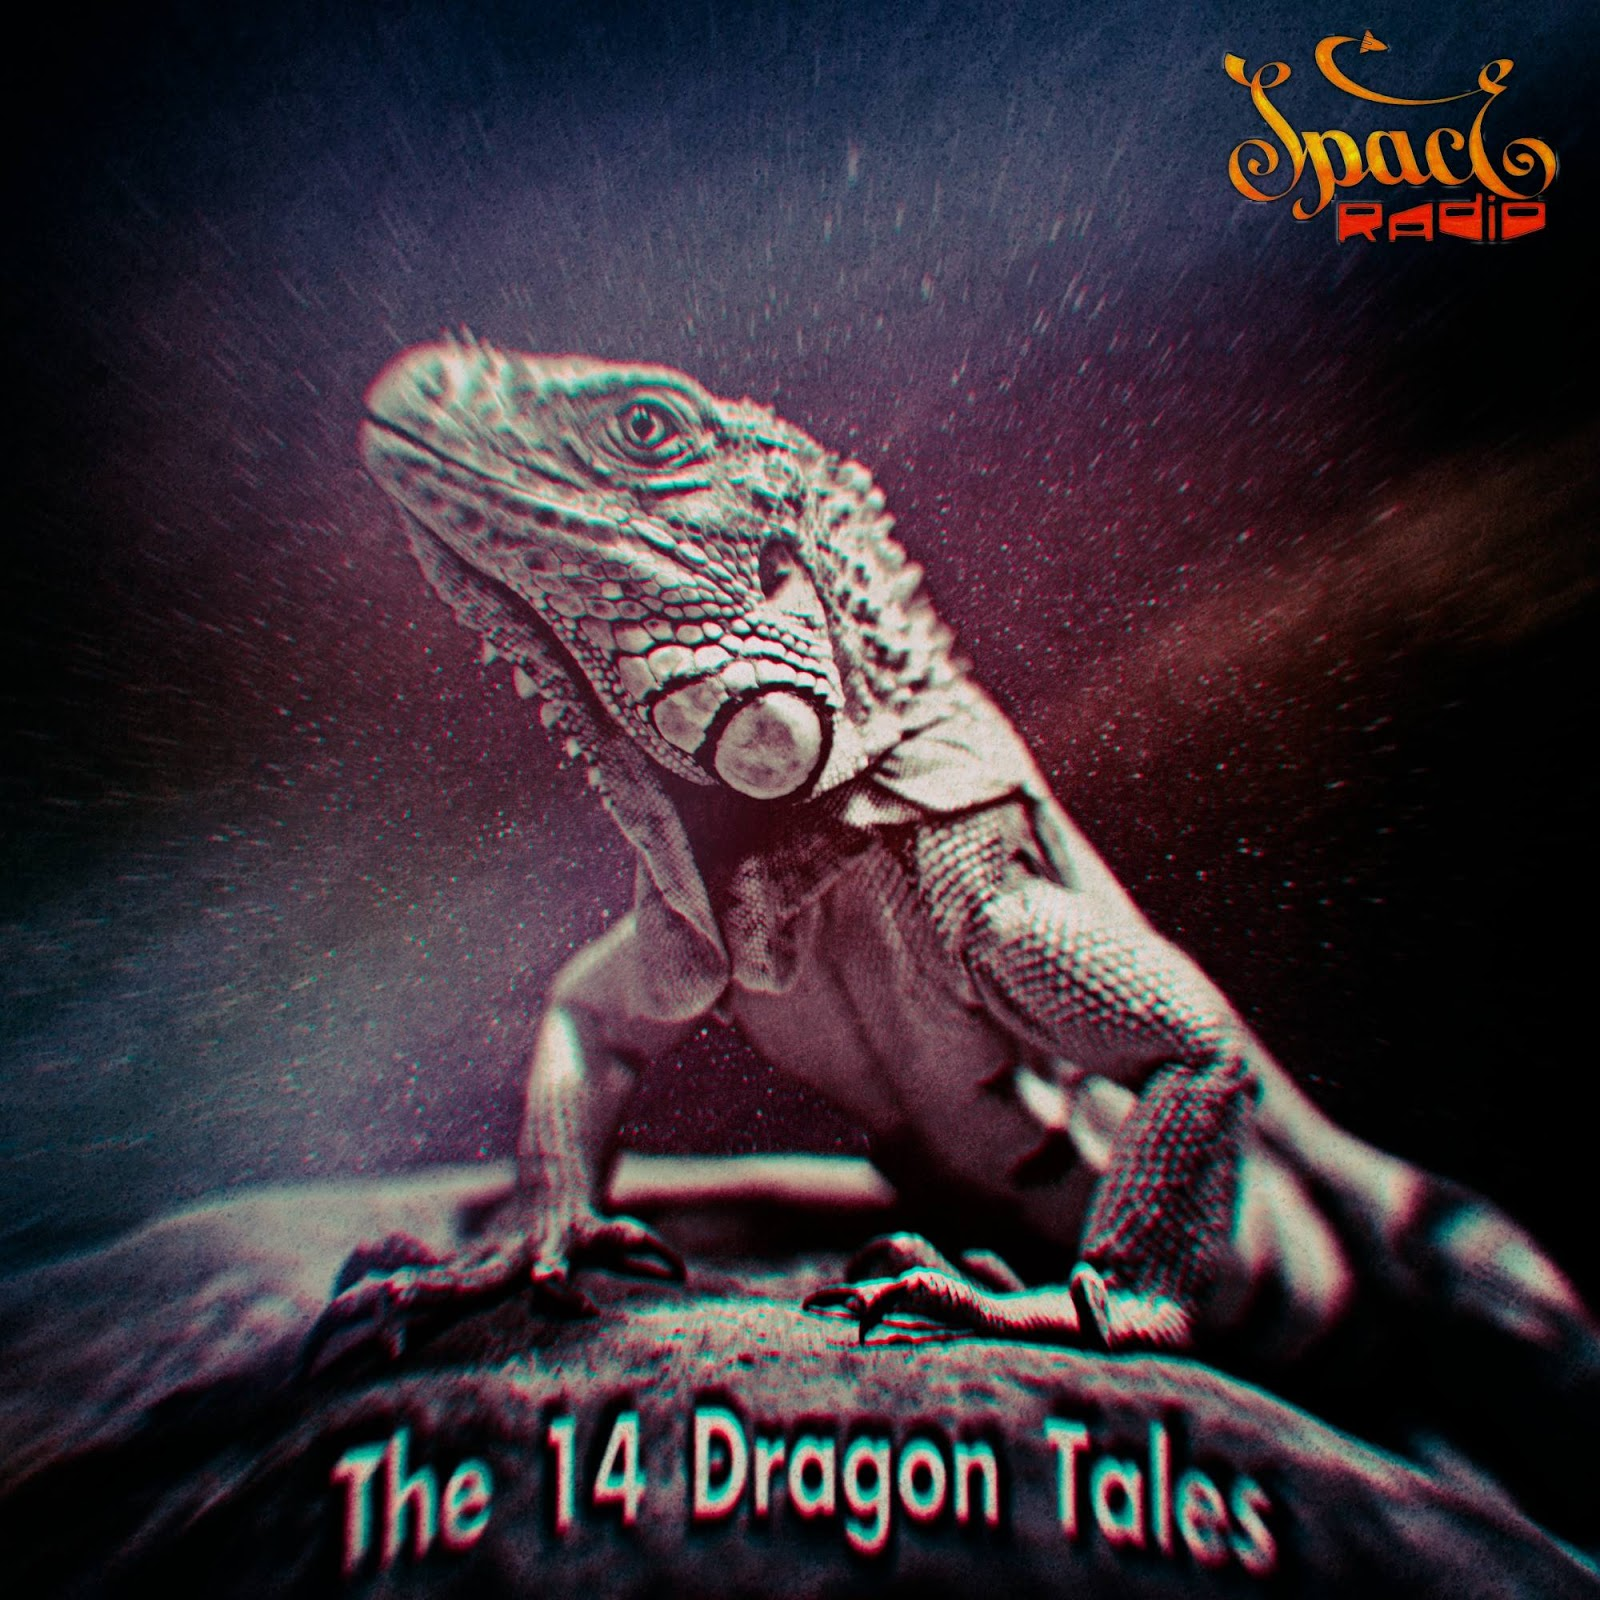 http://store.spaceradiorecords.com/album/va-the-14-dragon-tales